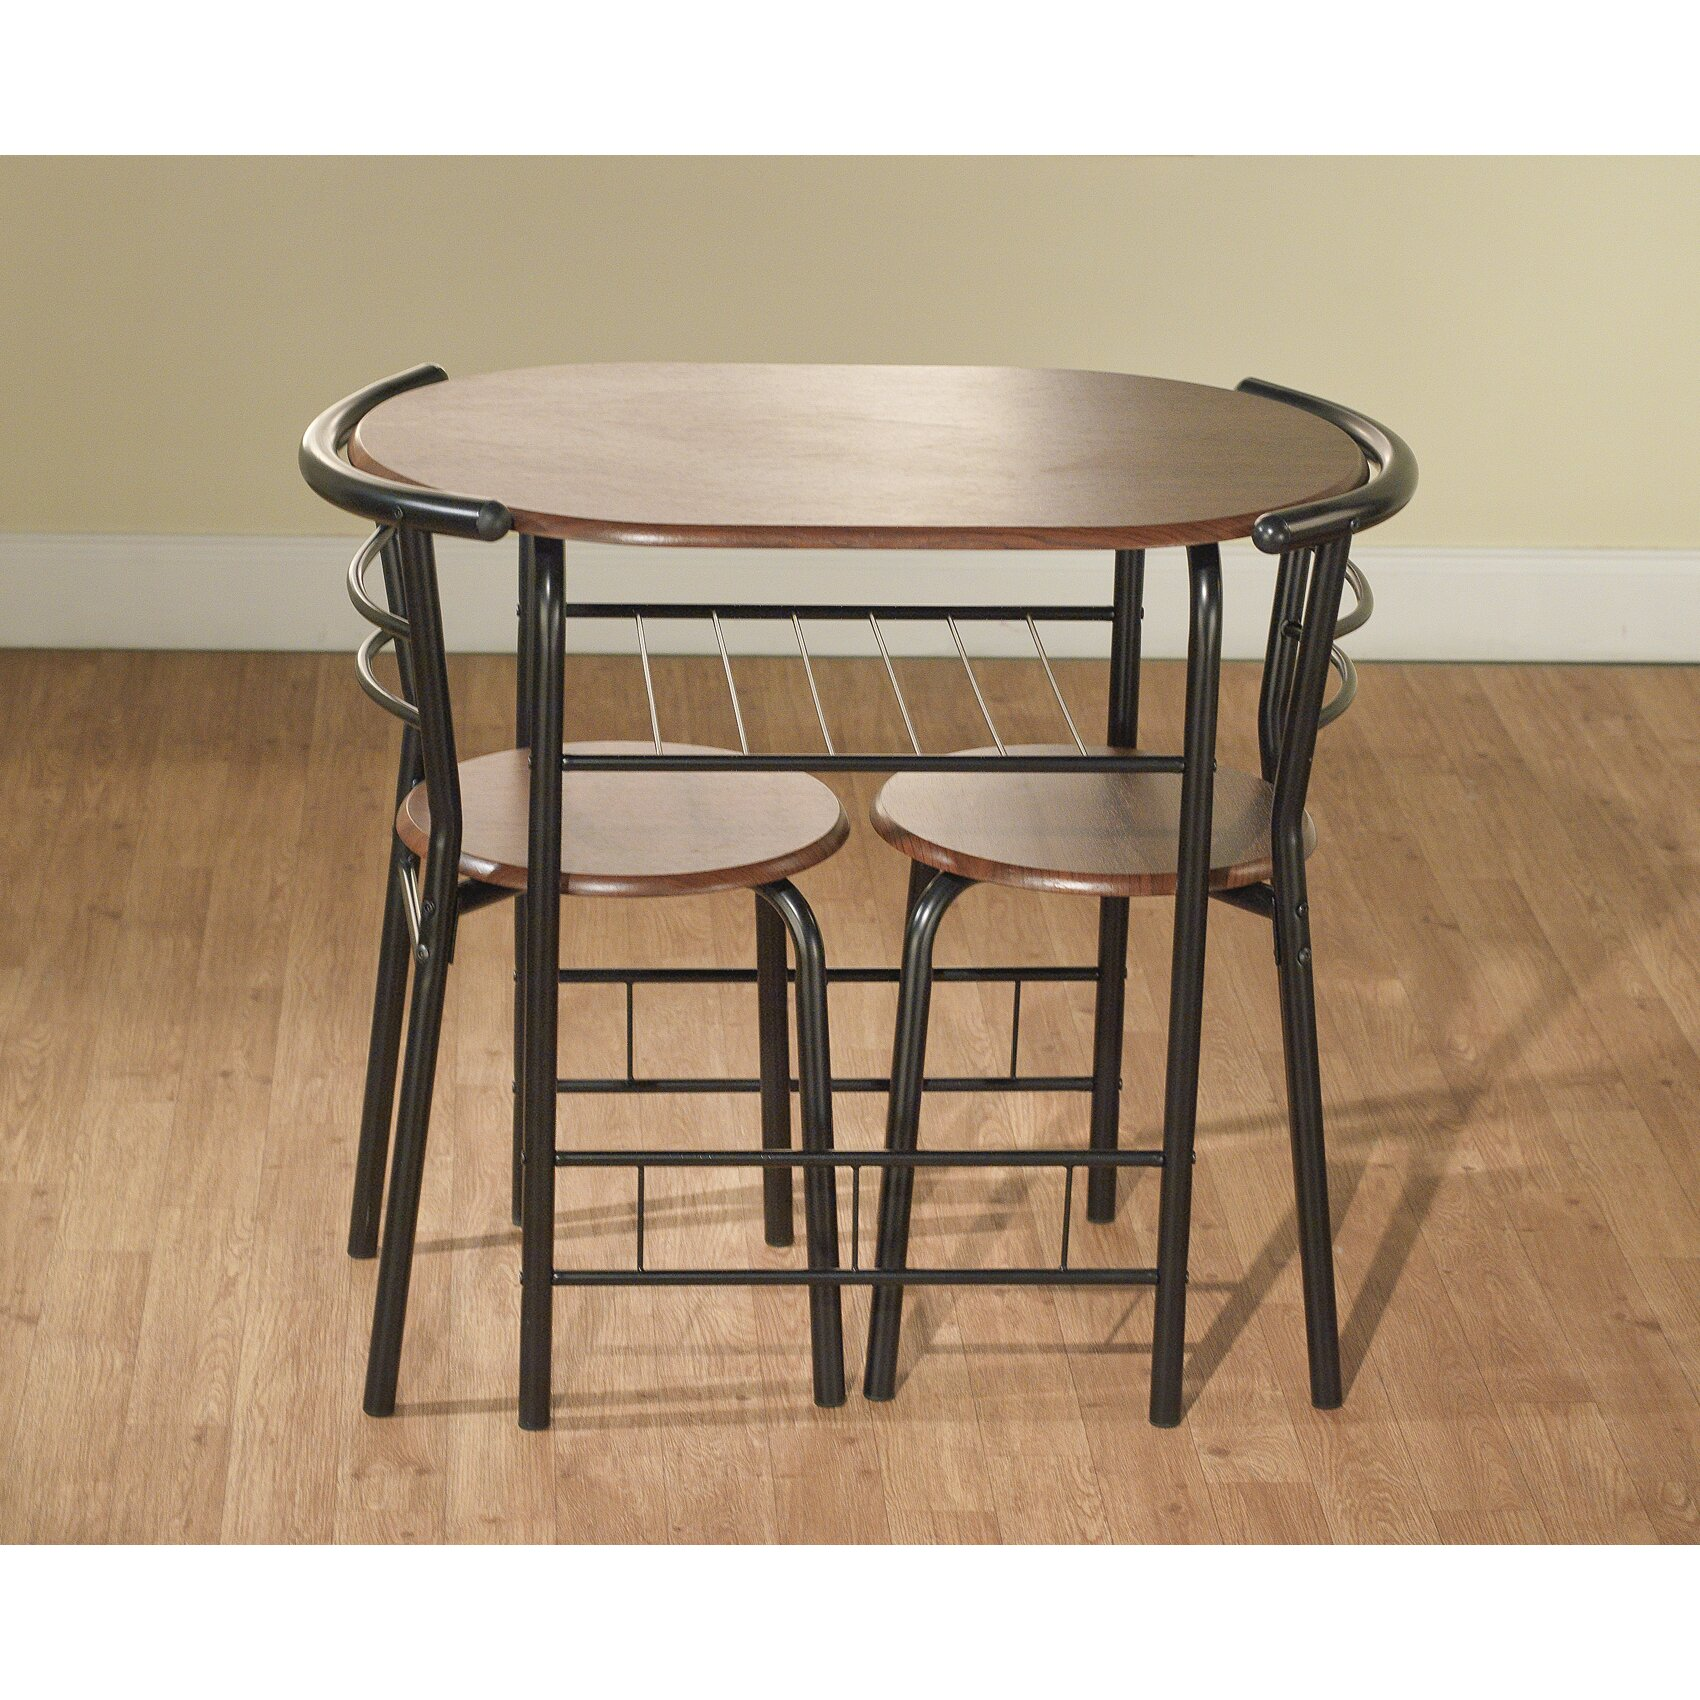 Tms Bistro 3 Piece Compact Dining Set Amp Reviews Wayfair